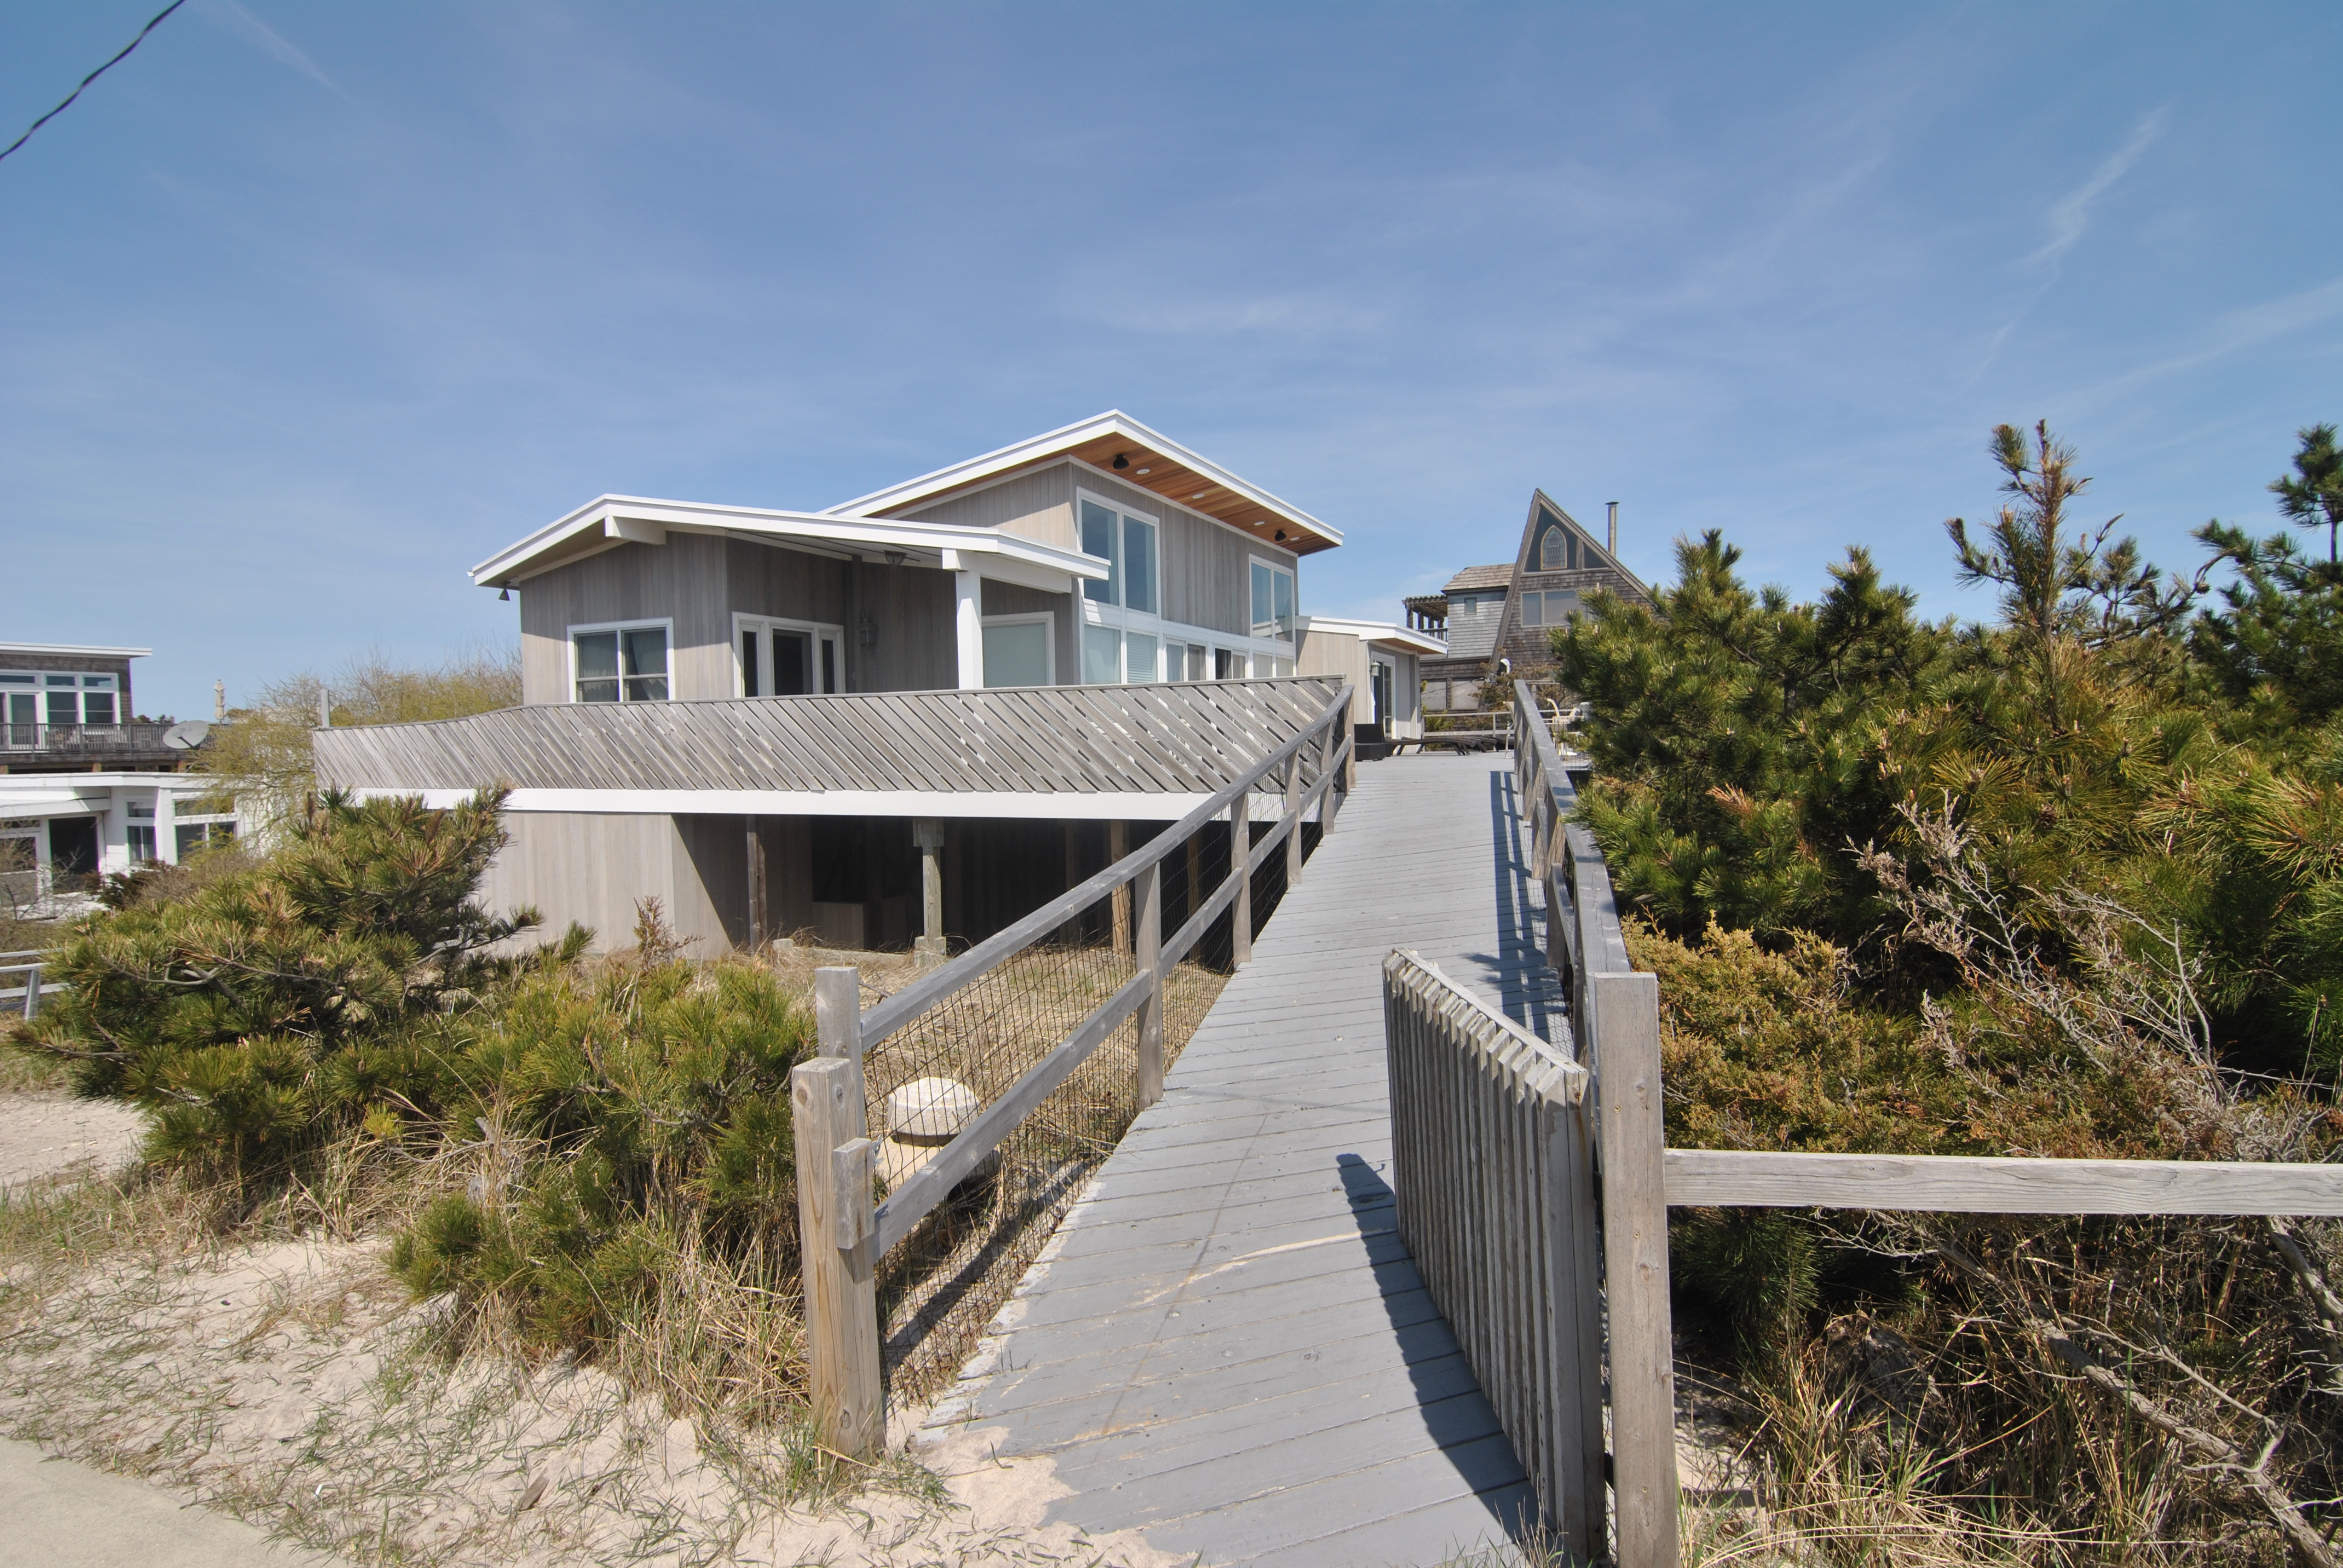 Large 5 bedroom beachfront home. Huge, ocean facing deck. Incredible views. Fully renovated. 3.5 bathrooms. Vacation in style this year. Fabulous Seaview location.   Available for June and September 2017.